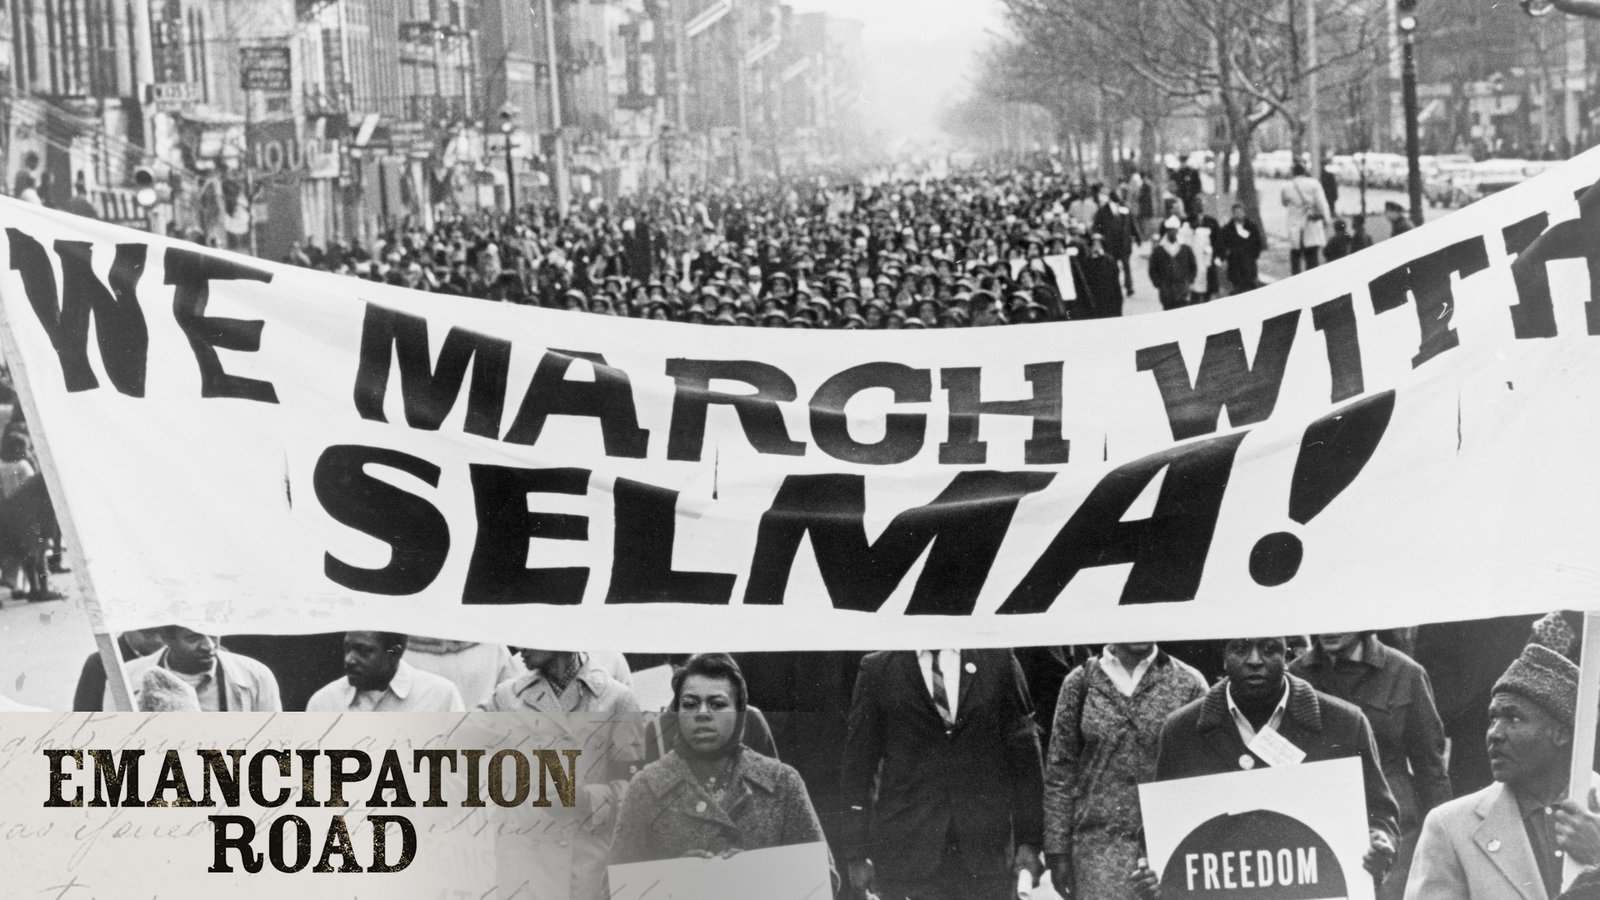 Emancipation Road: 1963-1968 - The Civil Rights Era